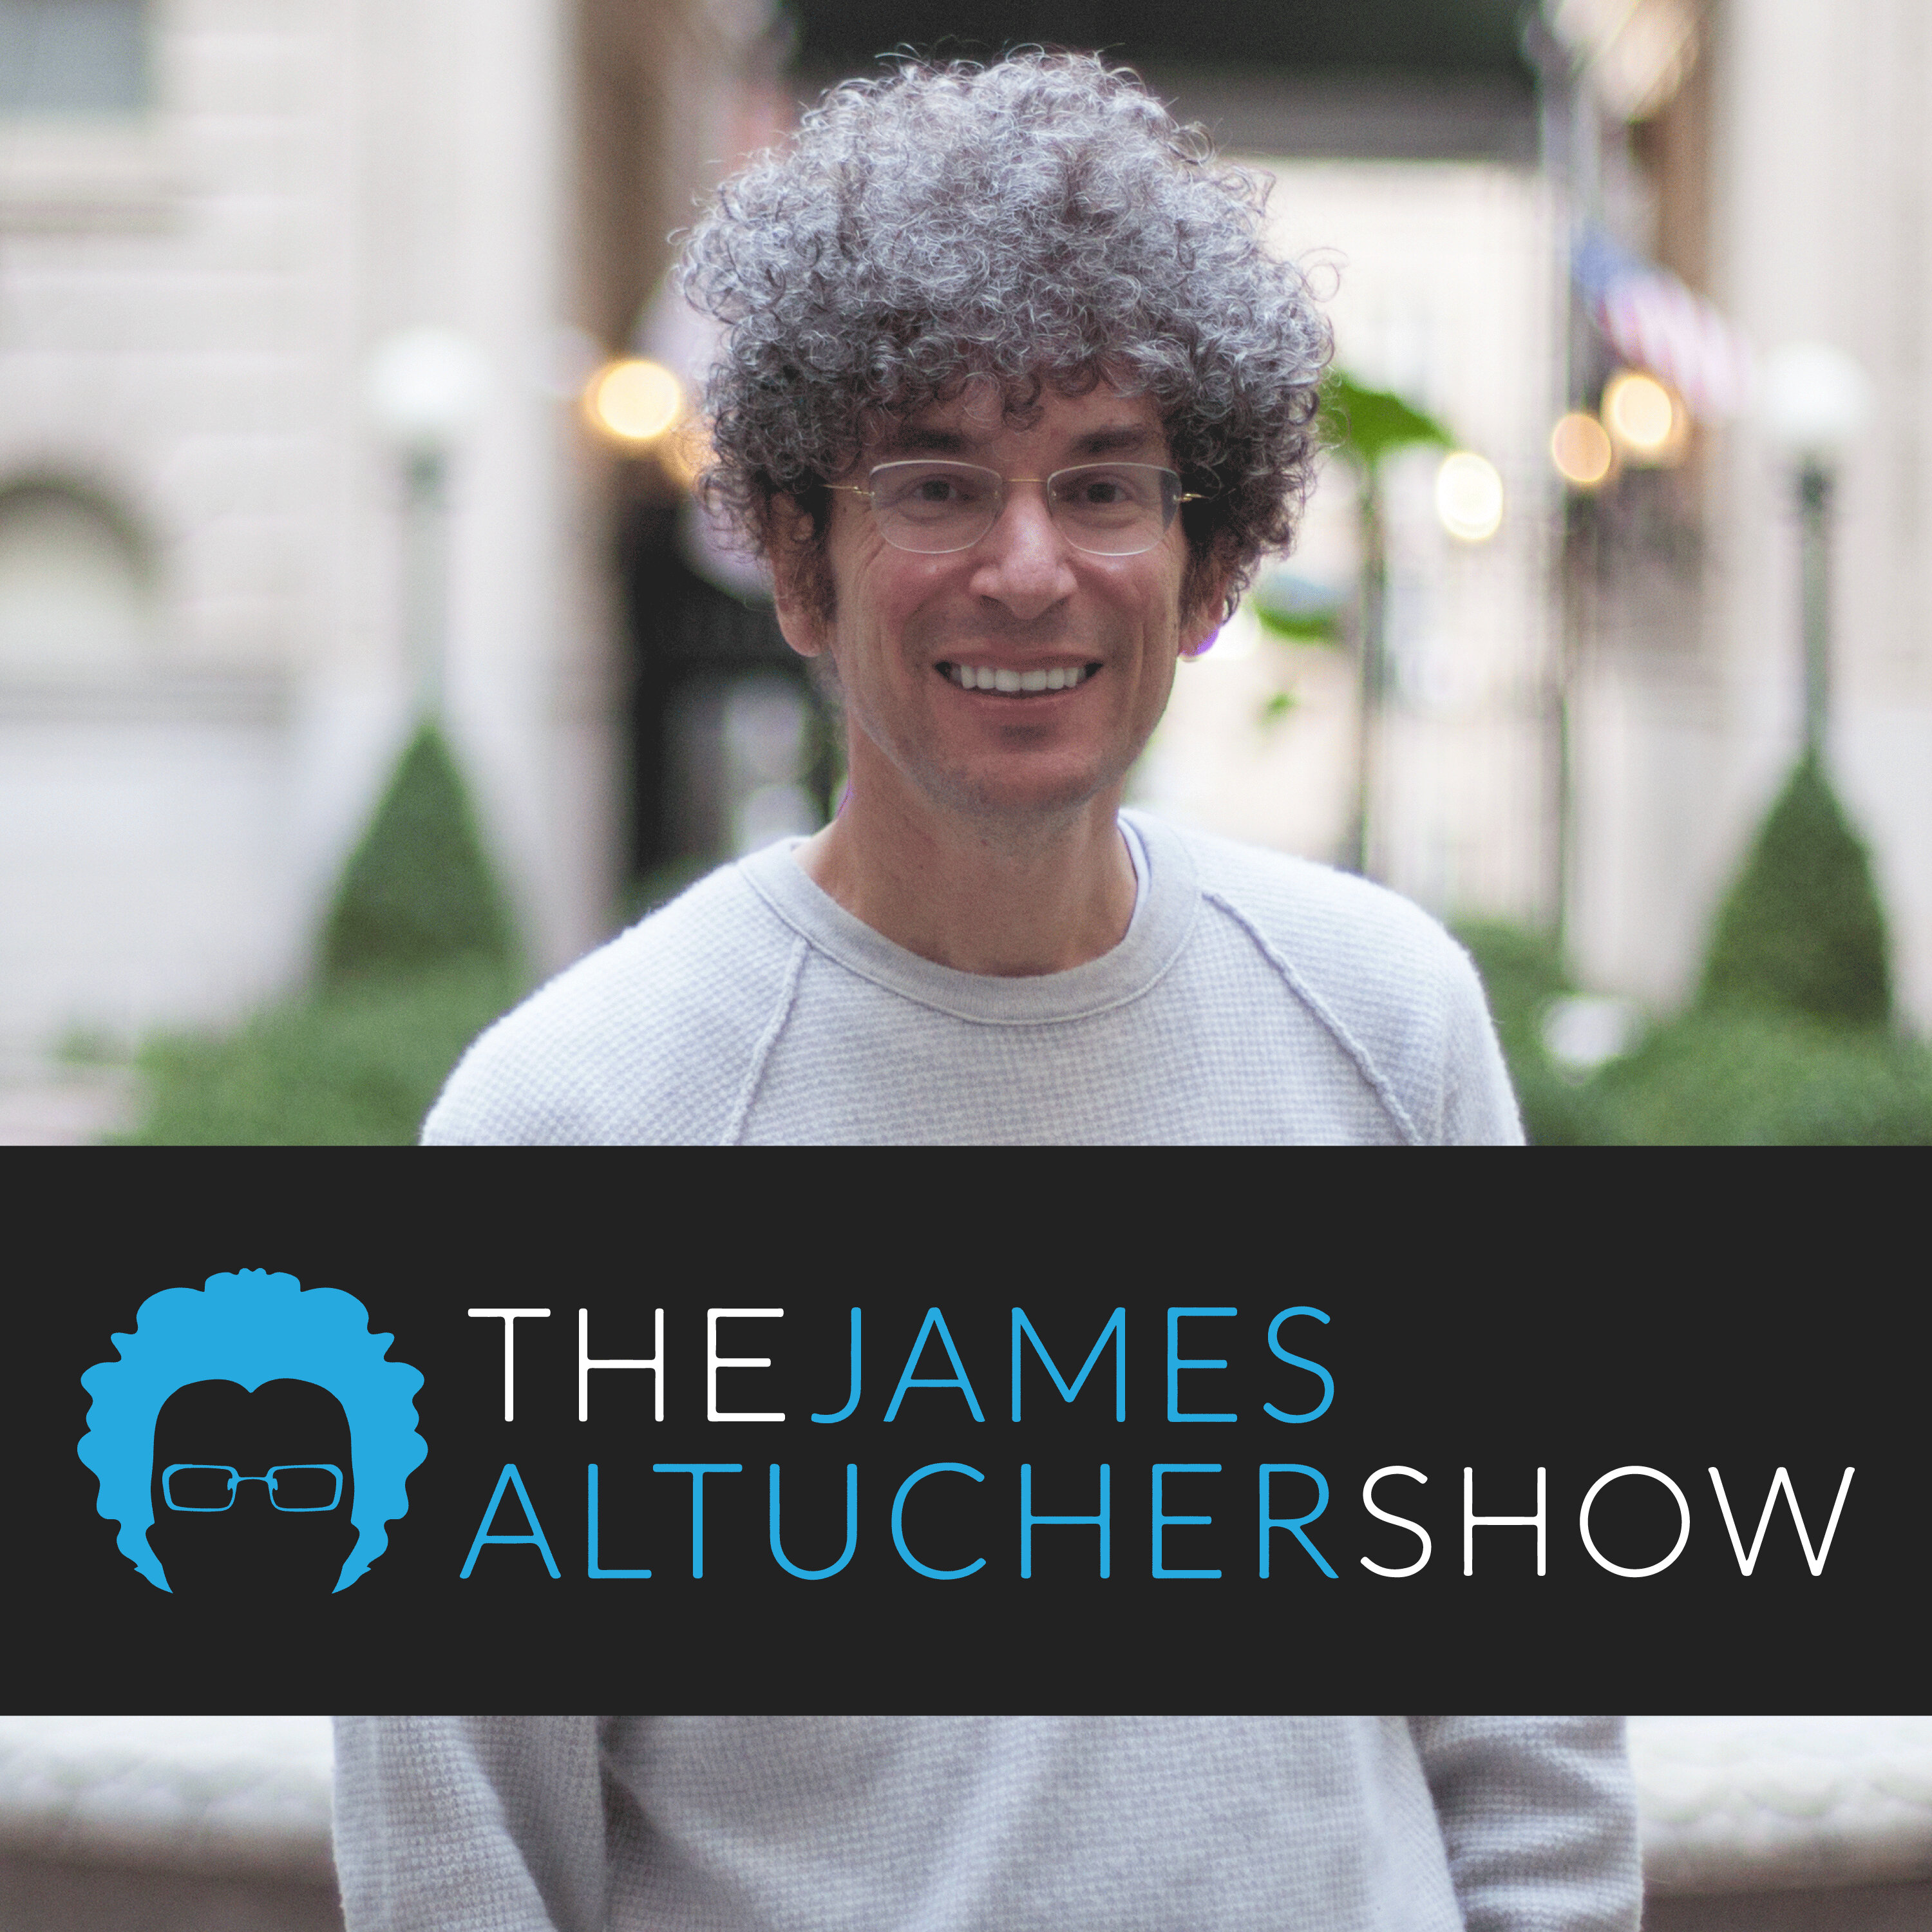 737 - To be successful, you have to do something that's unexpected with James Altucher